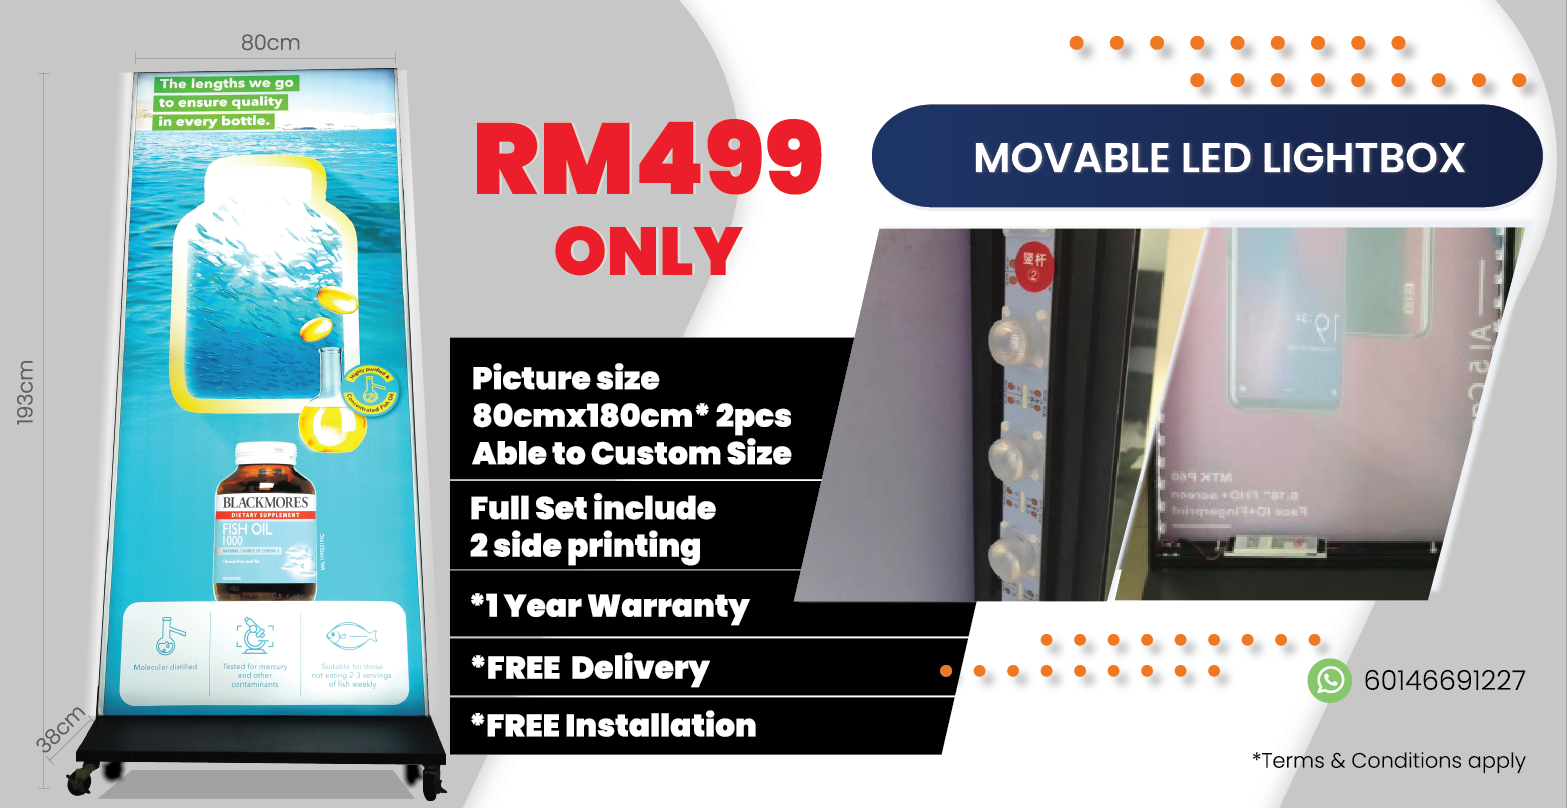 Movable LED Lightbox Full Set